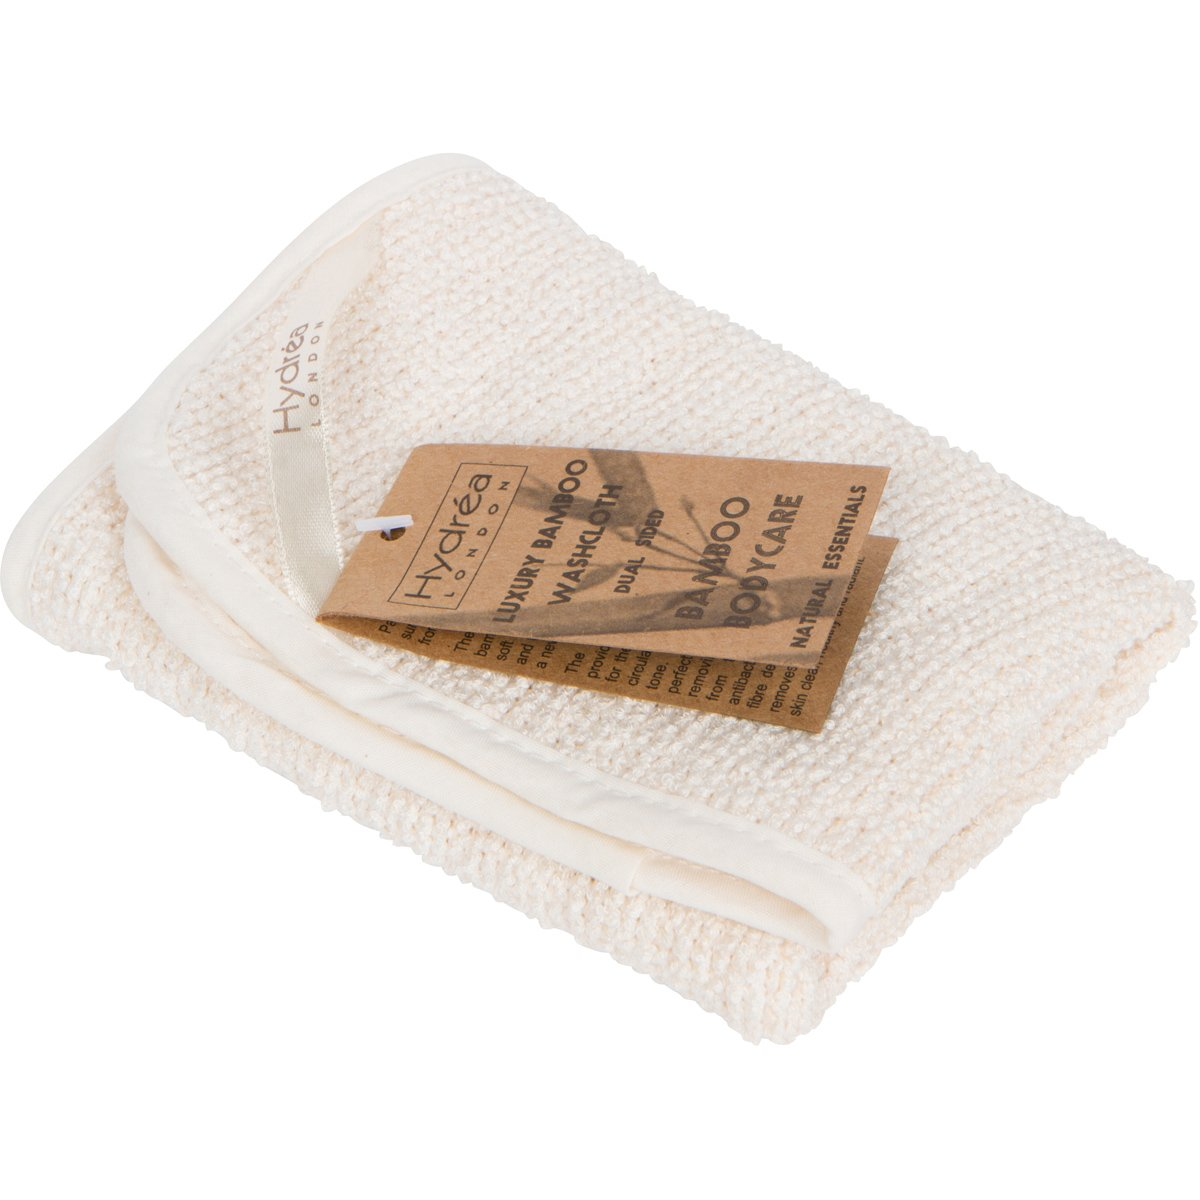 Hydrea London Body Bamboo Washcloth - Cotton Dual Sided Face All-Natural Antibacterial Hand Towel COMINHKR015907